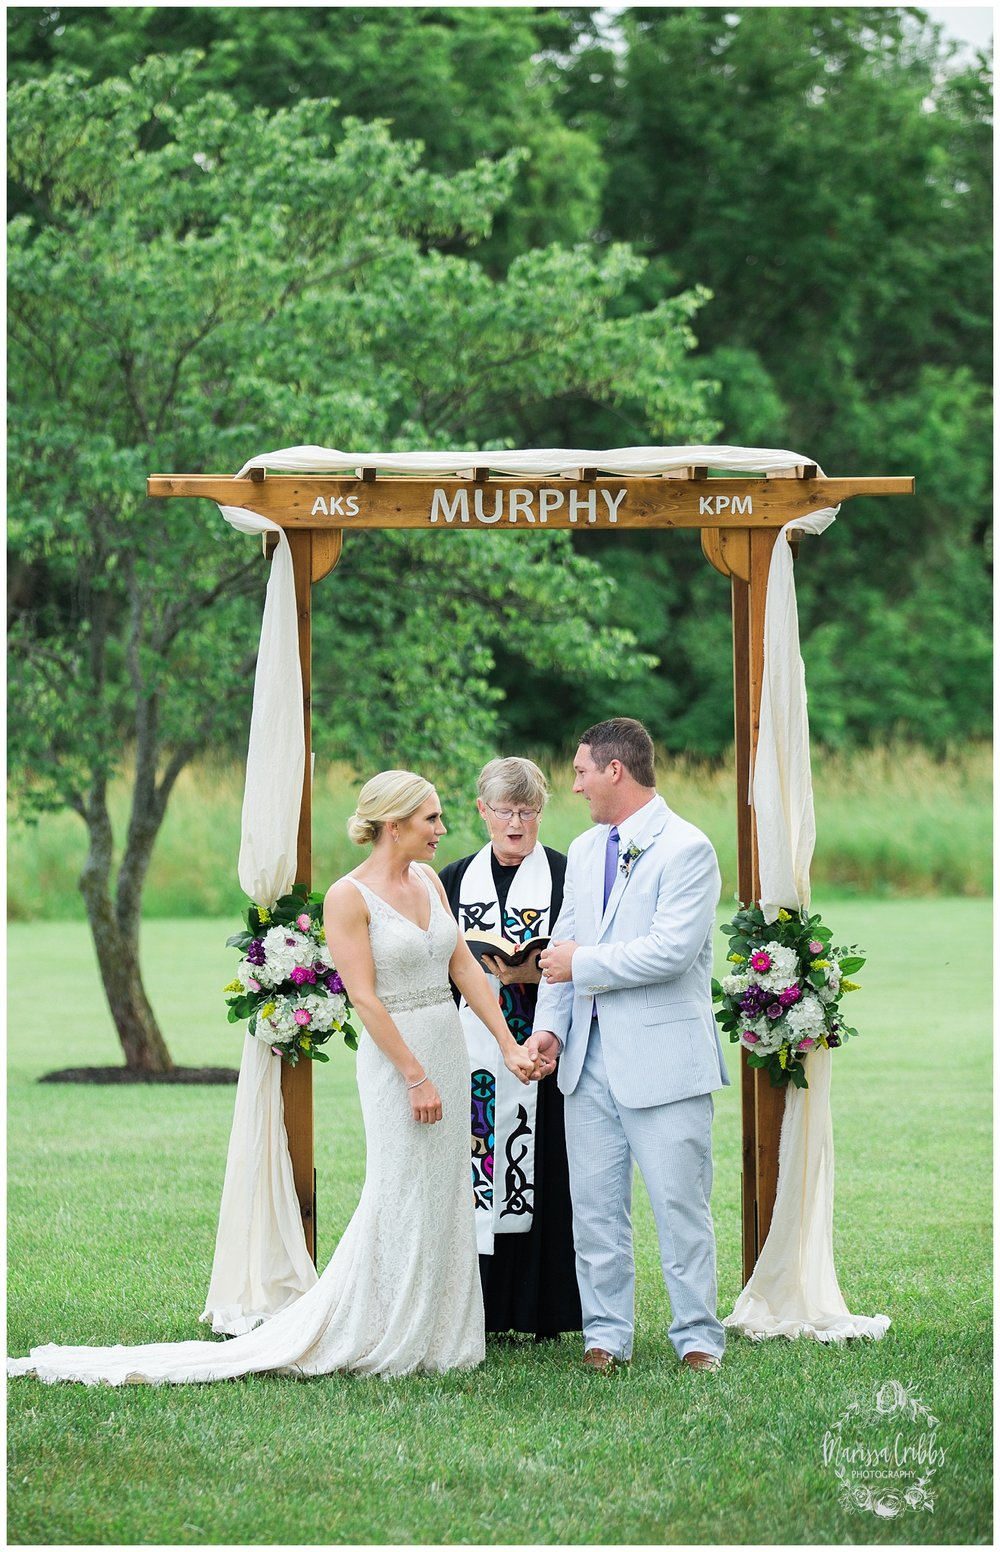 ALLISON & KEVIN WEDDING AT ST ANDREWS GOLF COURSE | MARISSA CRIBBS PHOTOGRAPHY_1760.jpg